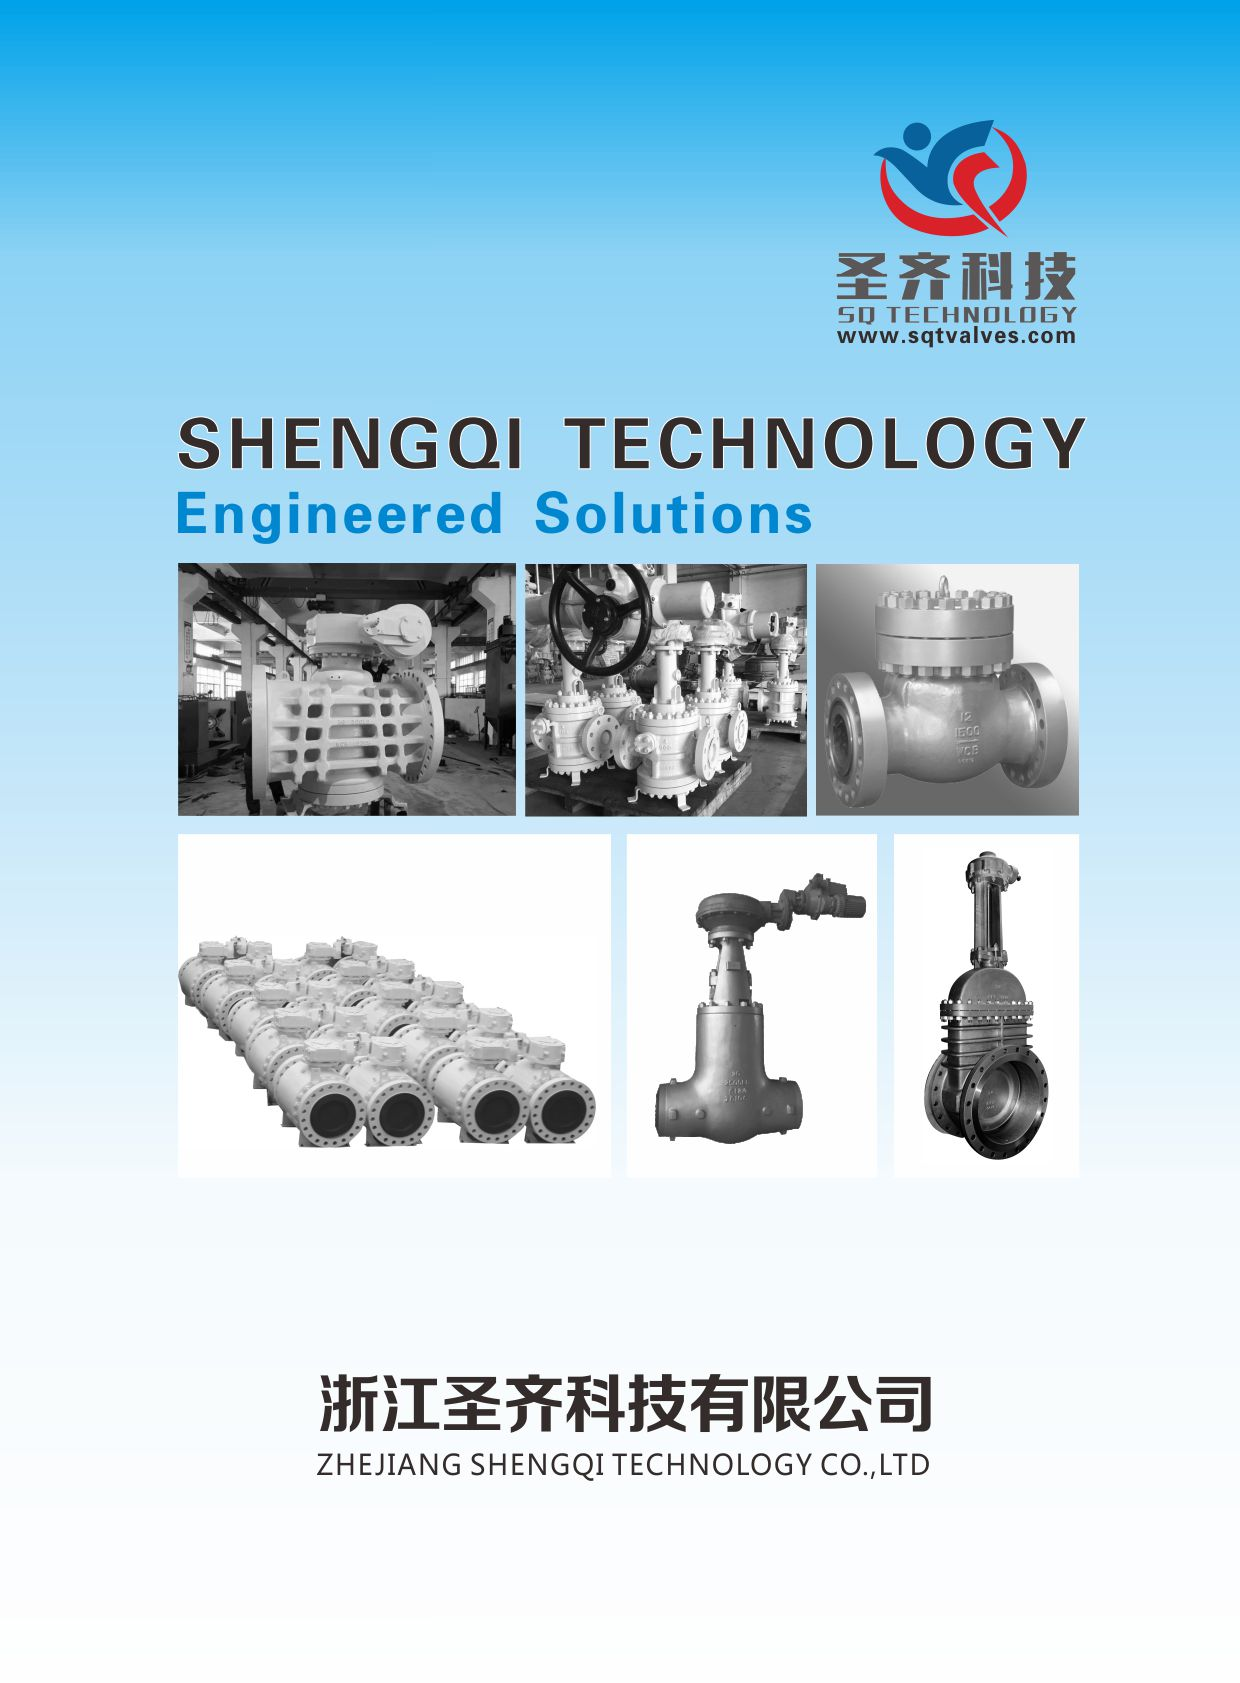 SHENGQI TECHNOLOGY(圣齐科技)E-BOOK